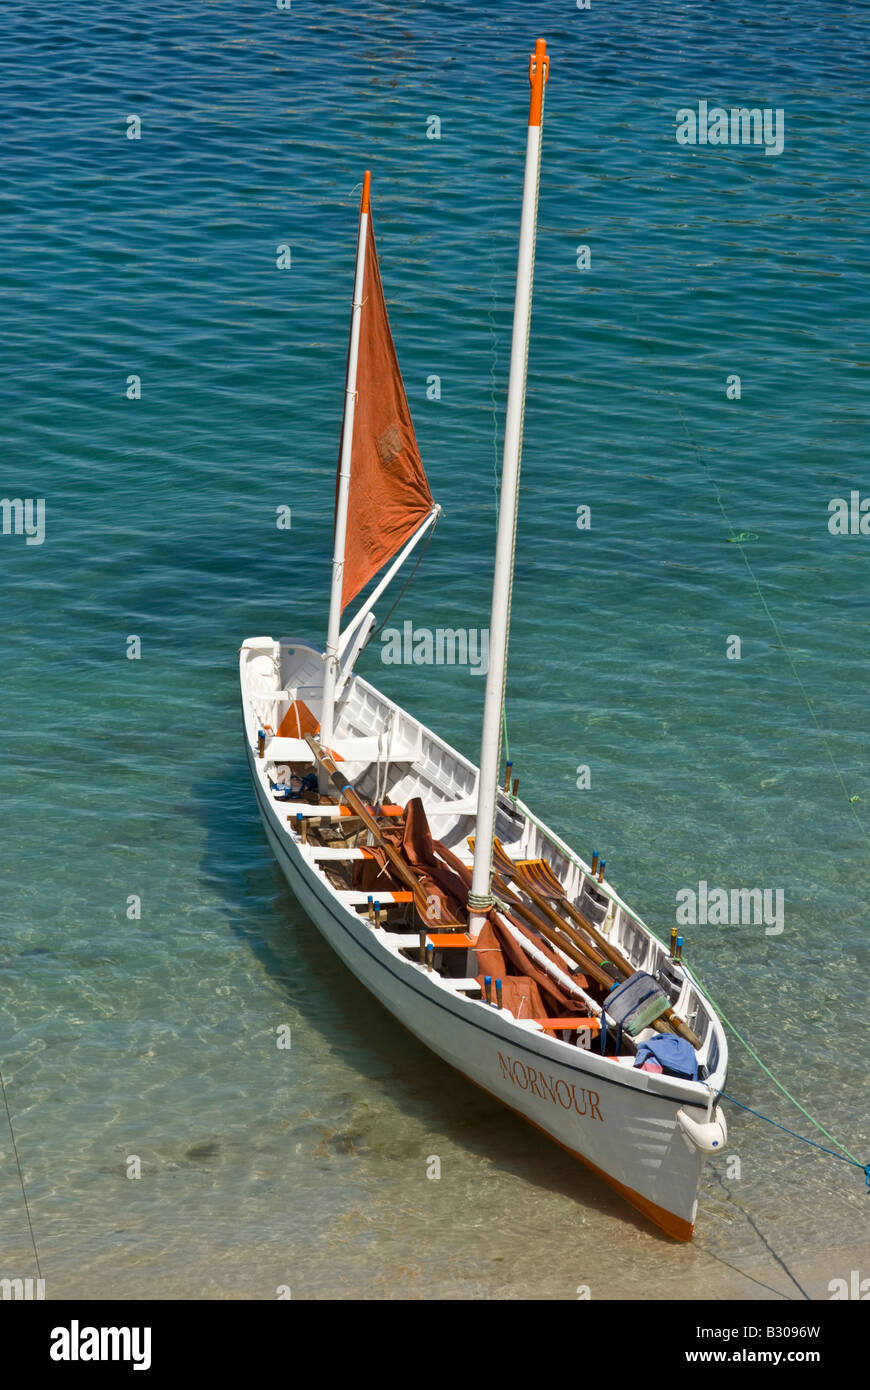 Pilot gig 'Nornour' ashore on St Agnes, Isles of Scilly, Cornwall, UK.  The mast is an unusual addition - Stock Image